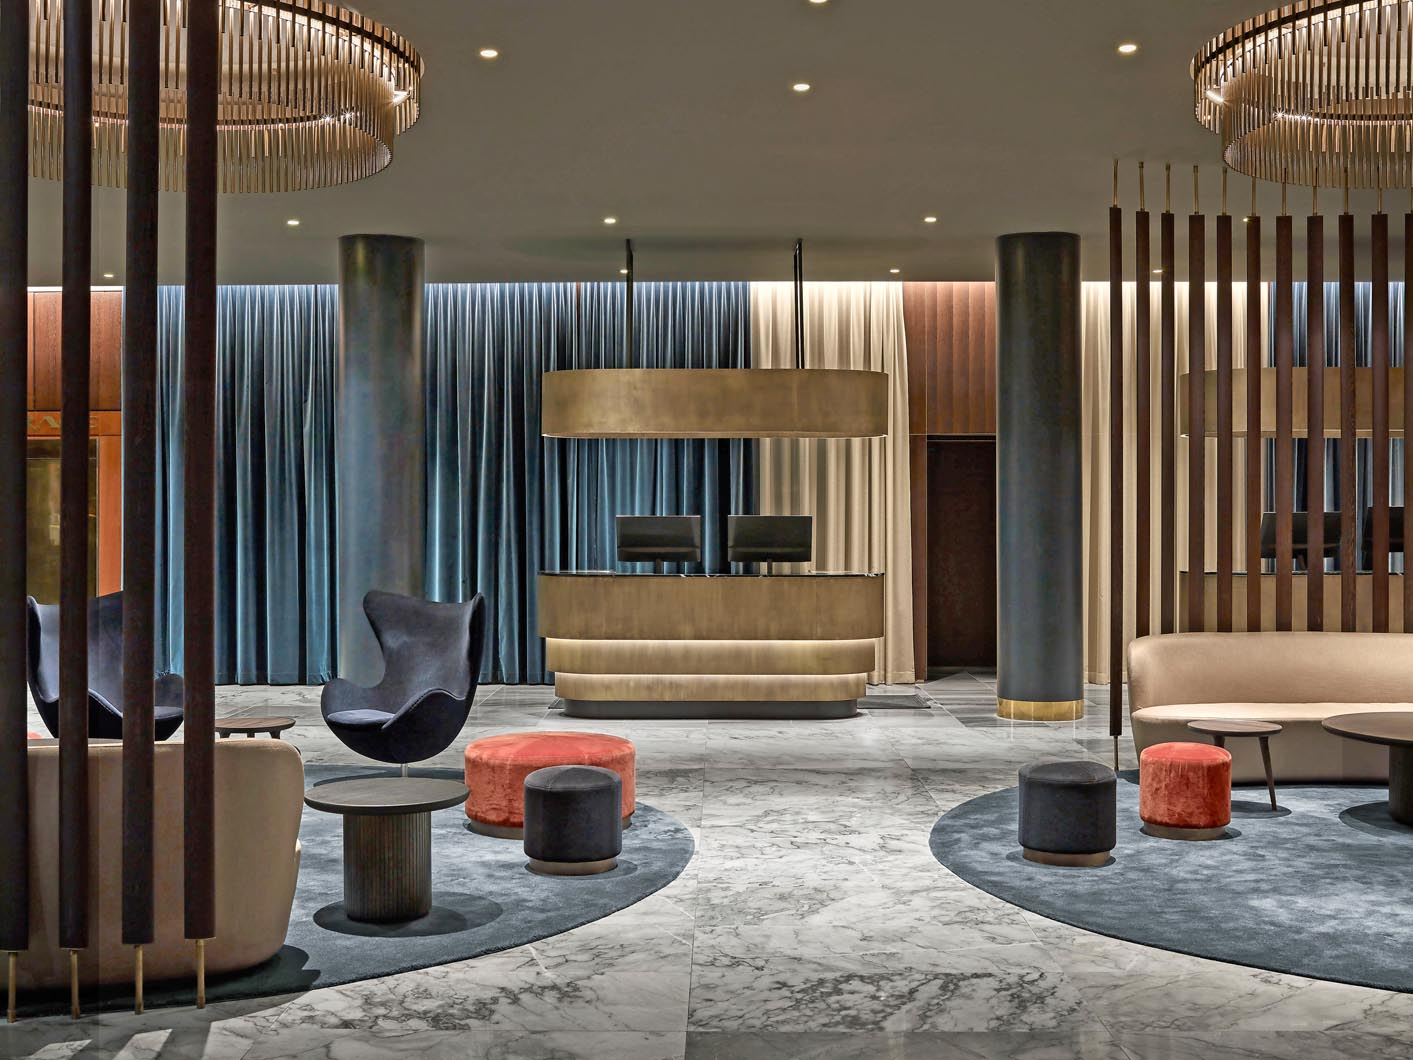 Design hotel a copenhagen livingcorriere for Top design hotels copenhagen